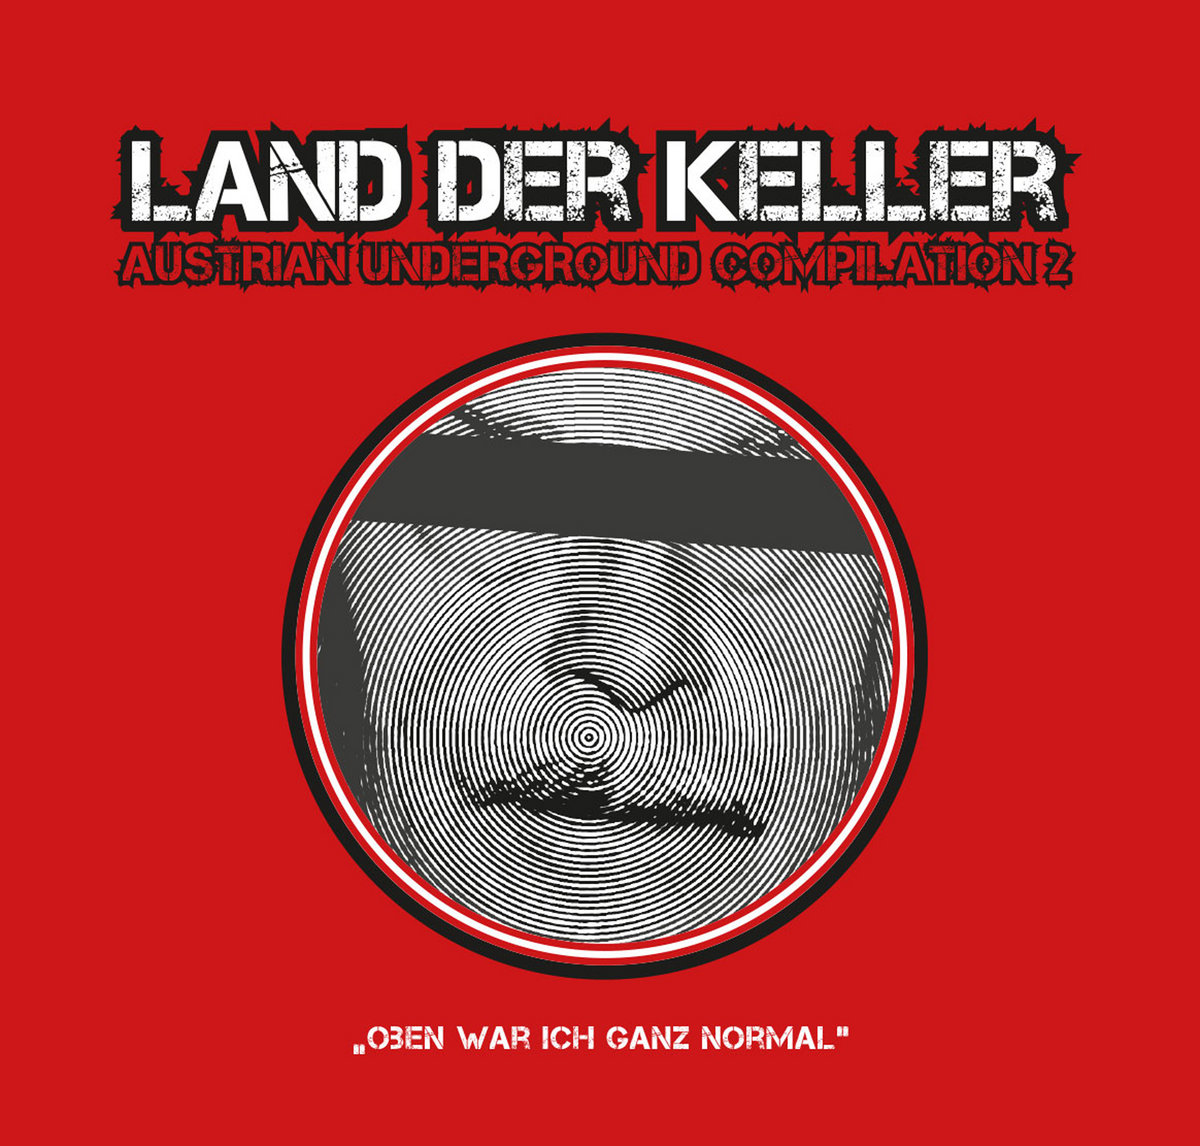 Der Keller Shop V A Land Der Keller Vol 2 Chelseas Choice Magazine Beilage